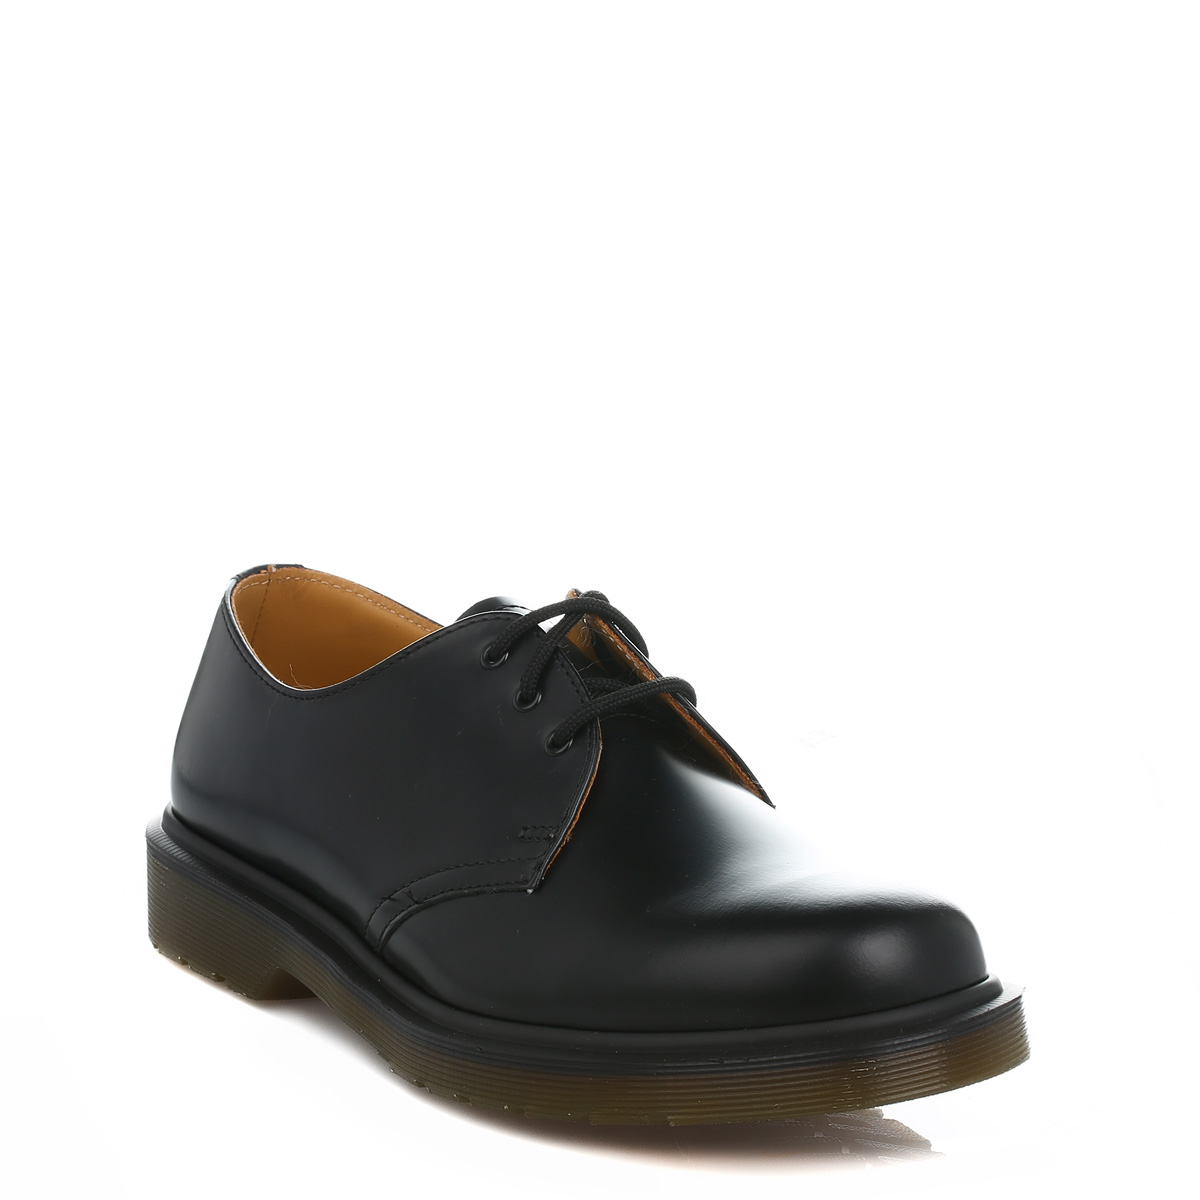 dr martens mens womens docs shoes leather casual lace up